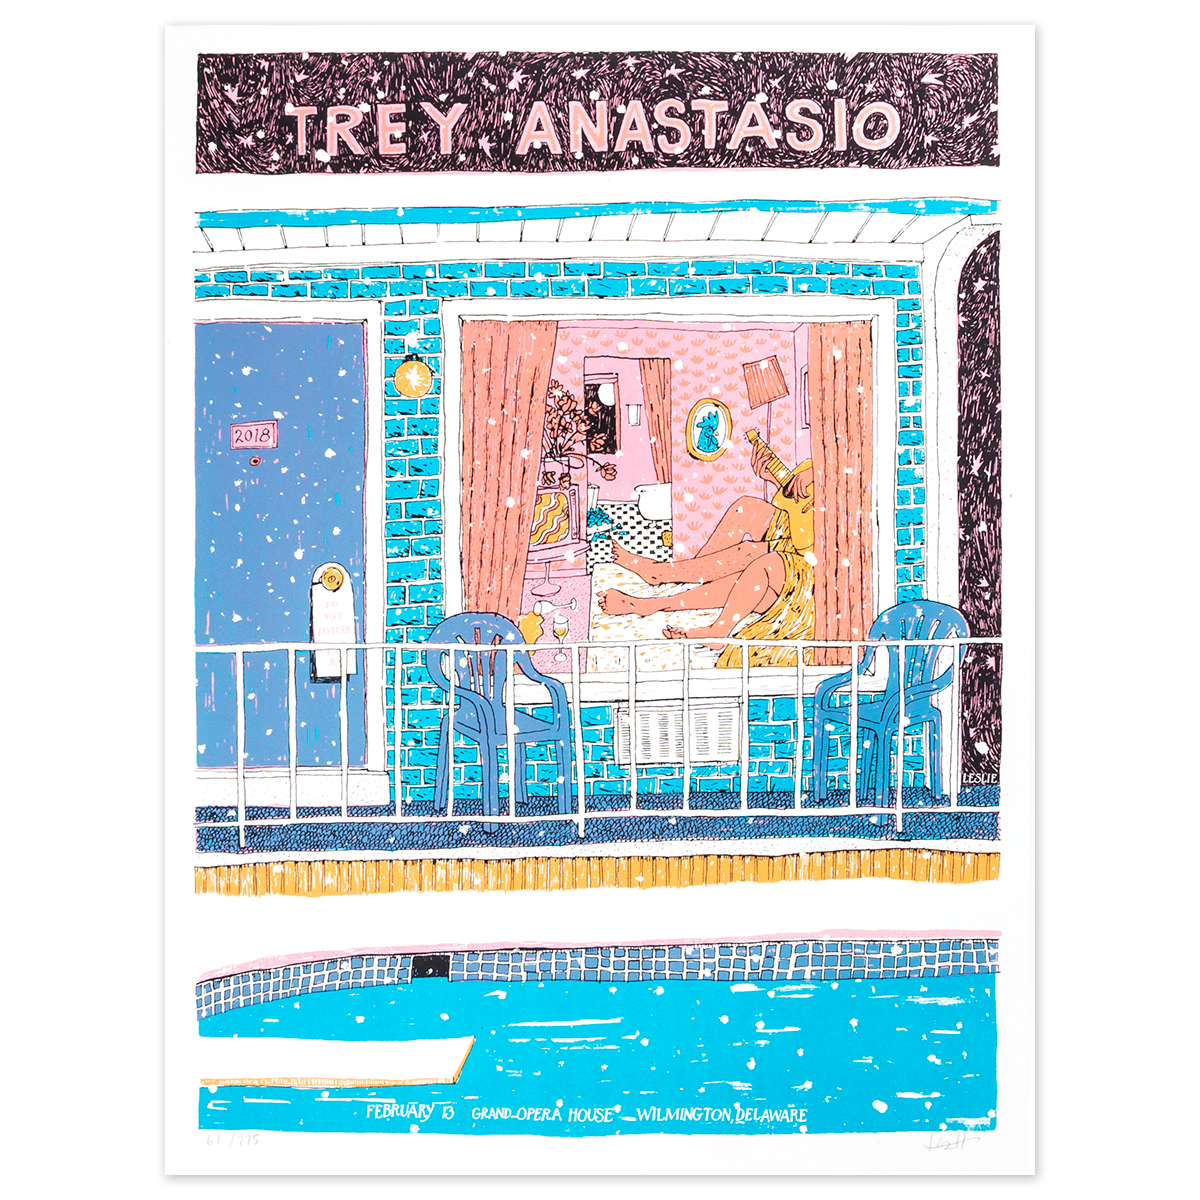 Trey Anastasio Grand Opera House, Wilmington LE Poster